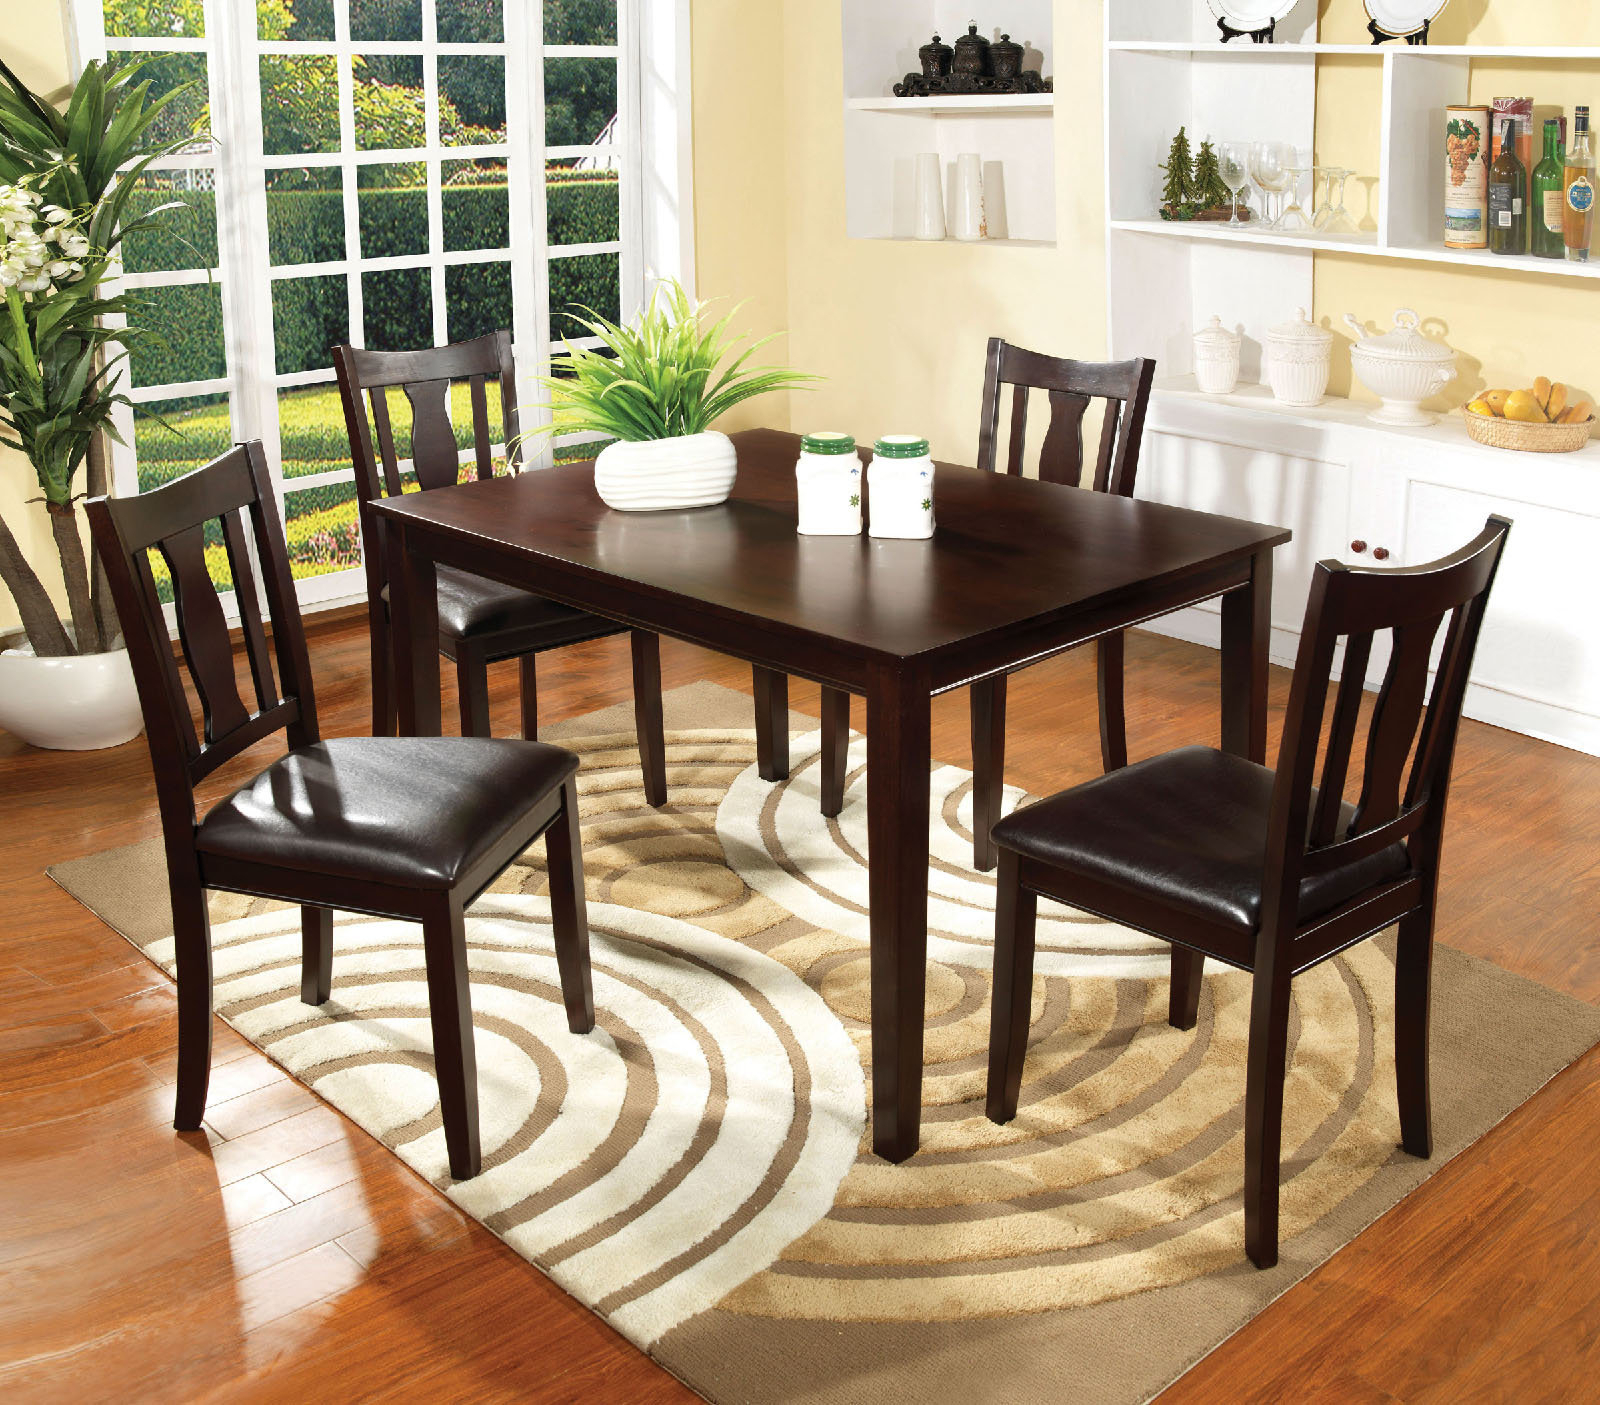 Crewellwalk 5 Piece Dining Set Intended For Most Up To Date Tavarez 5 Piece Dining Sets (Photo 7 of 20)